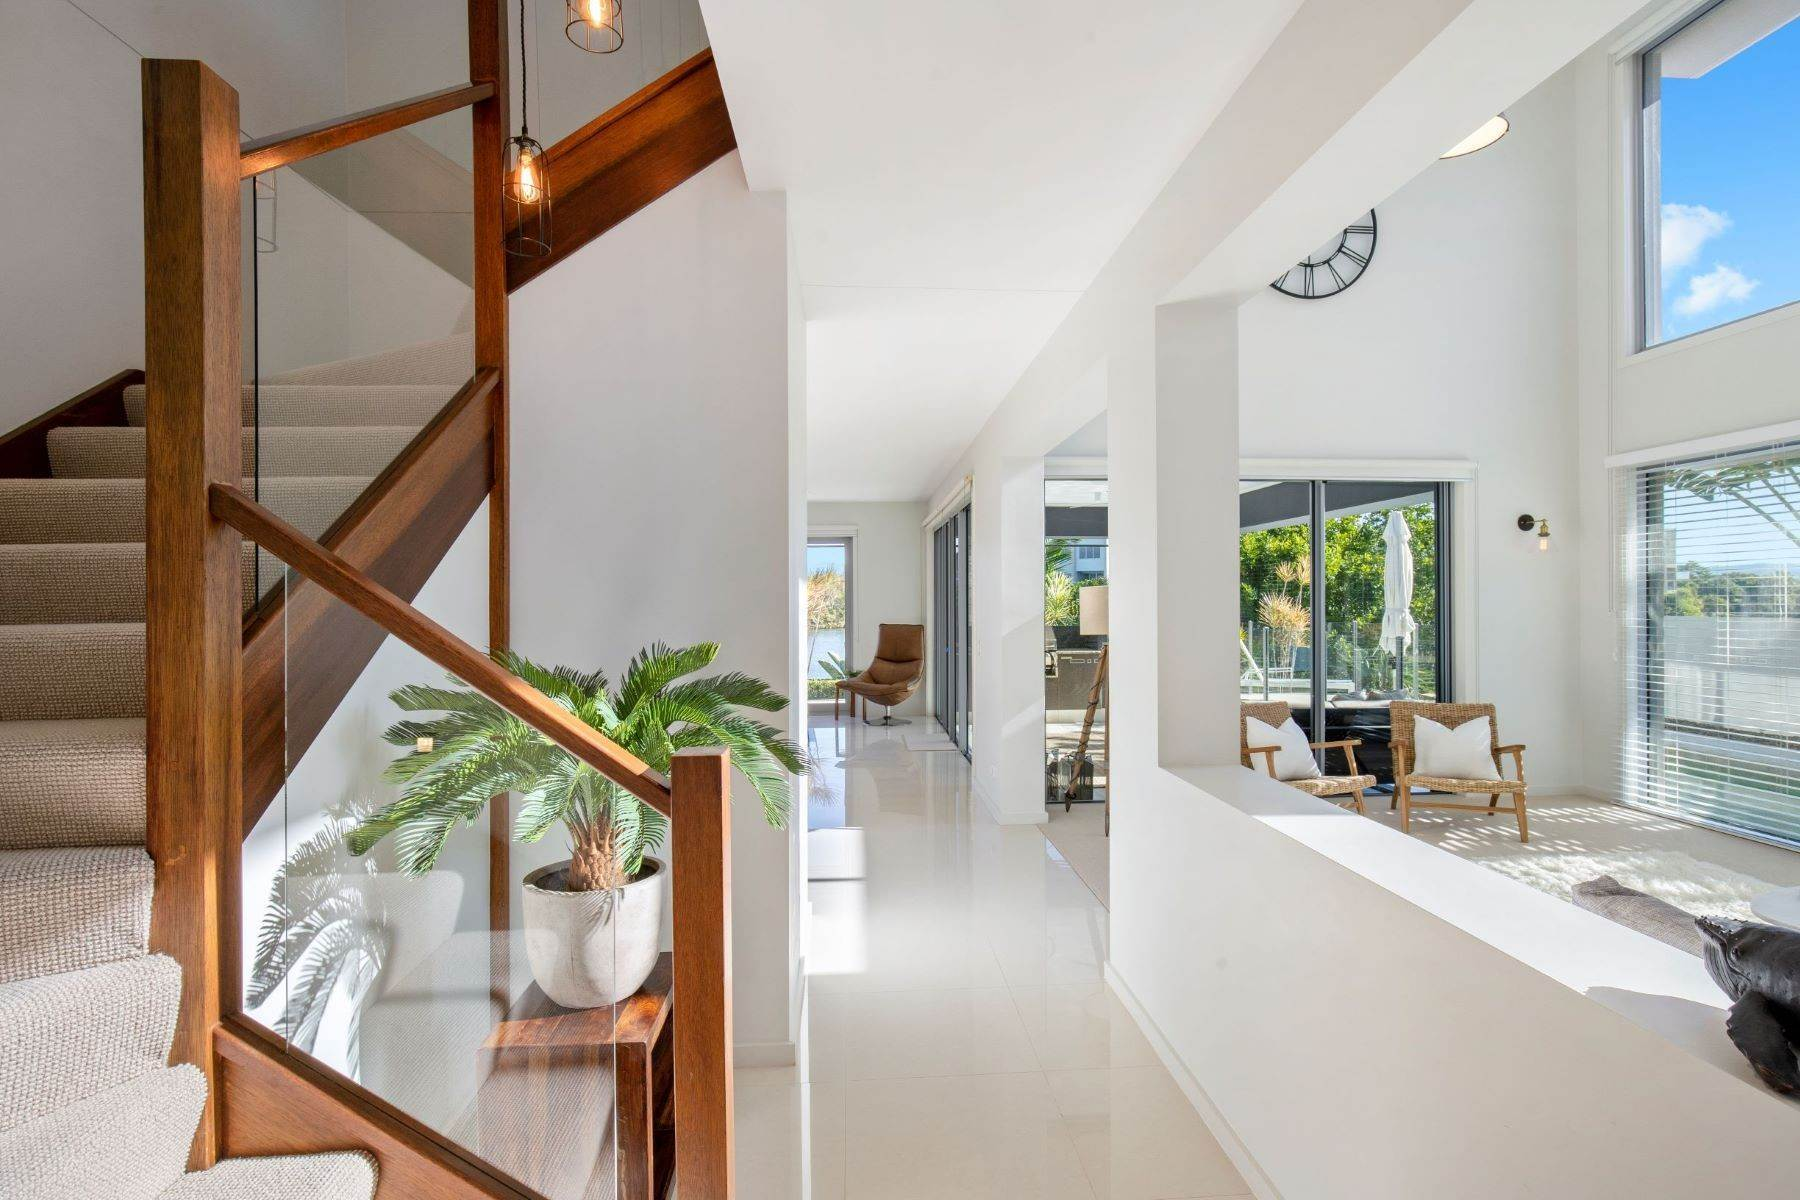 8. Single Family Homes for Sale at Luxury Lakeside Family Home on Prestigious Emerald Island 5068 Emerald Island Drive Other Queensland, Queensland 4211 Australia